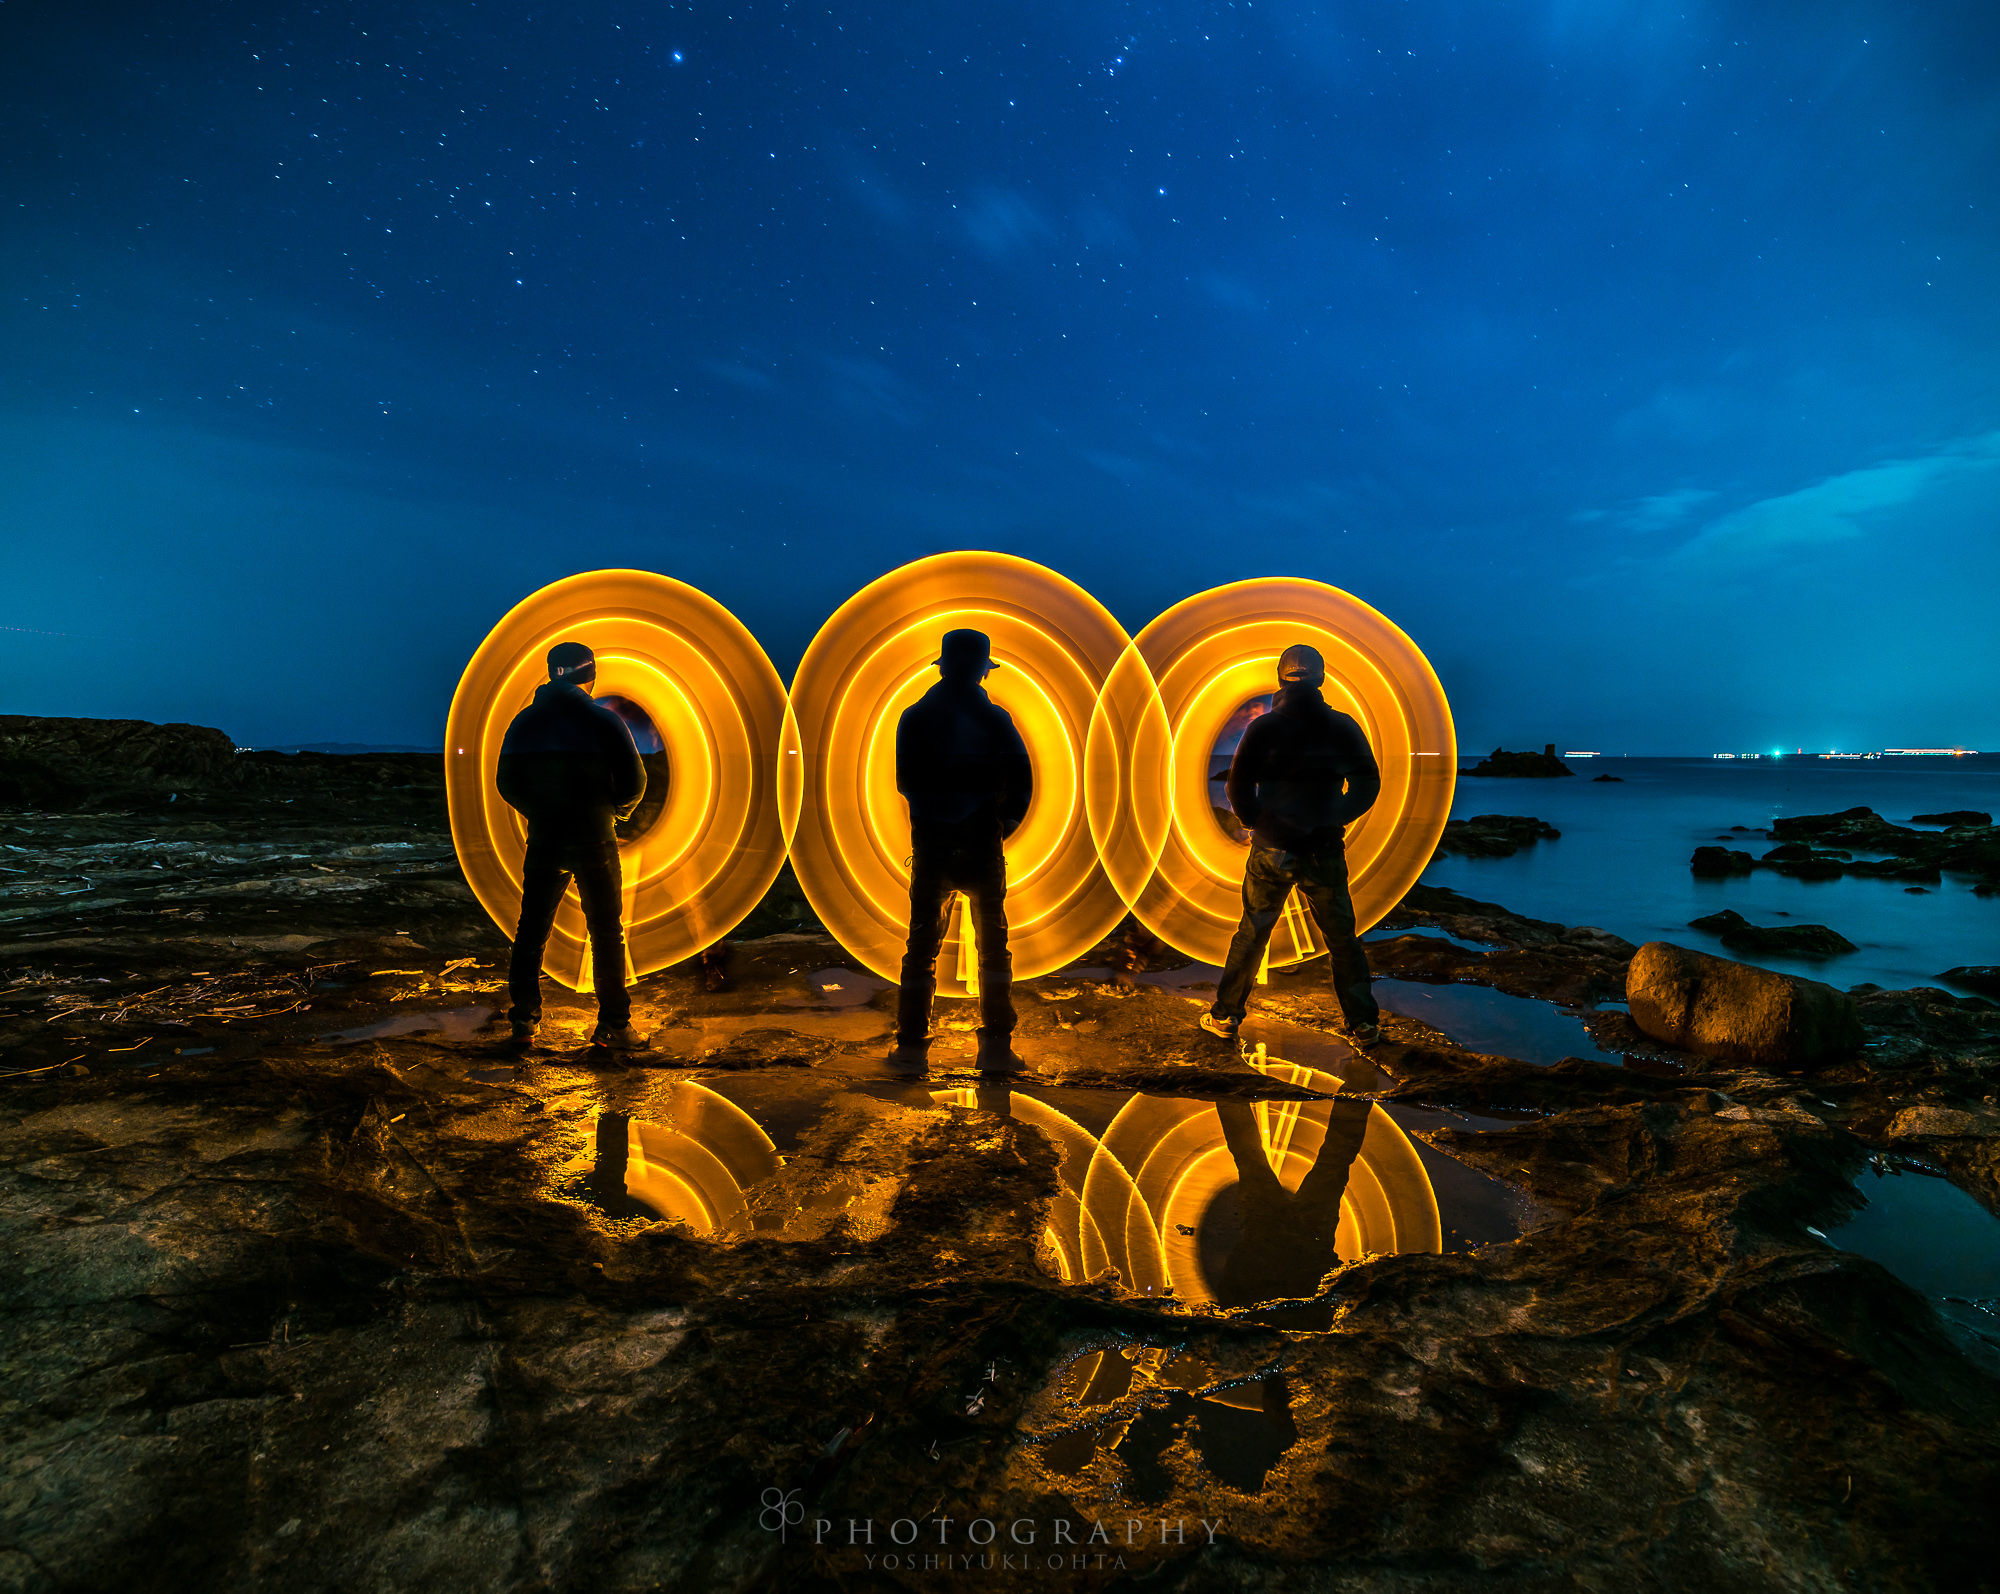 we are light painters